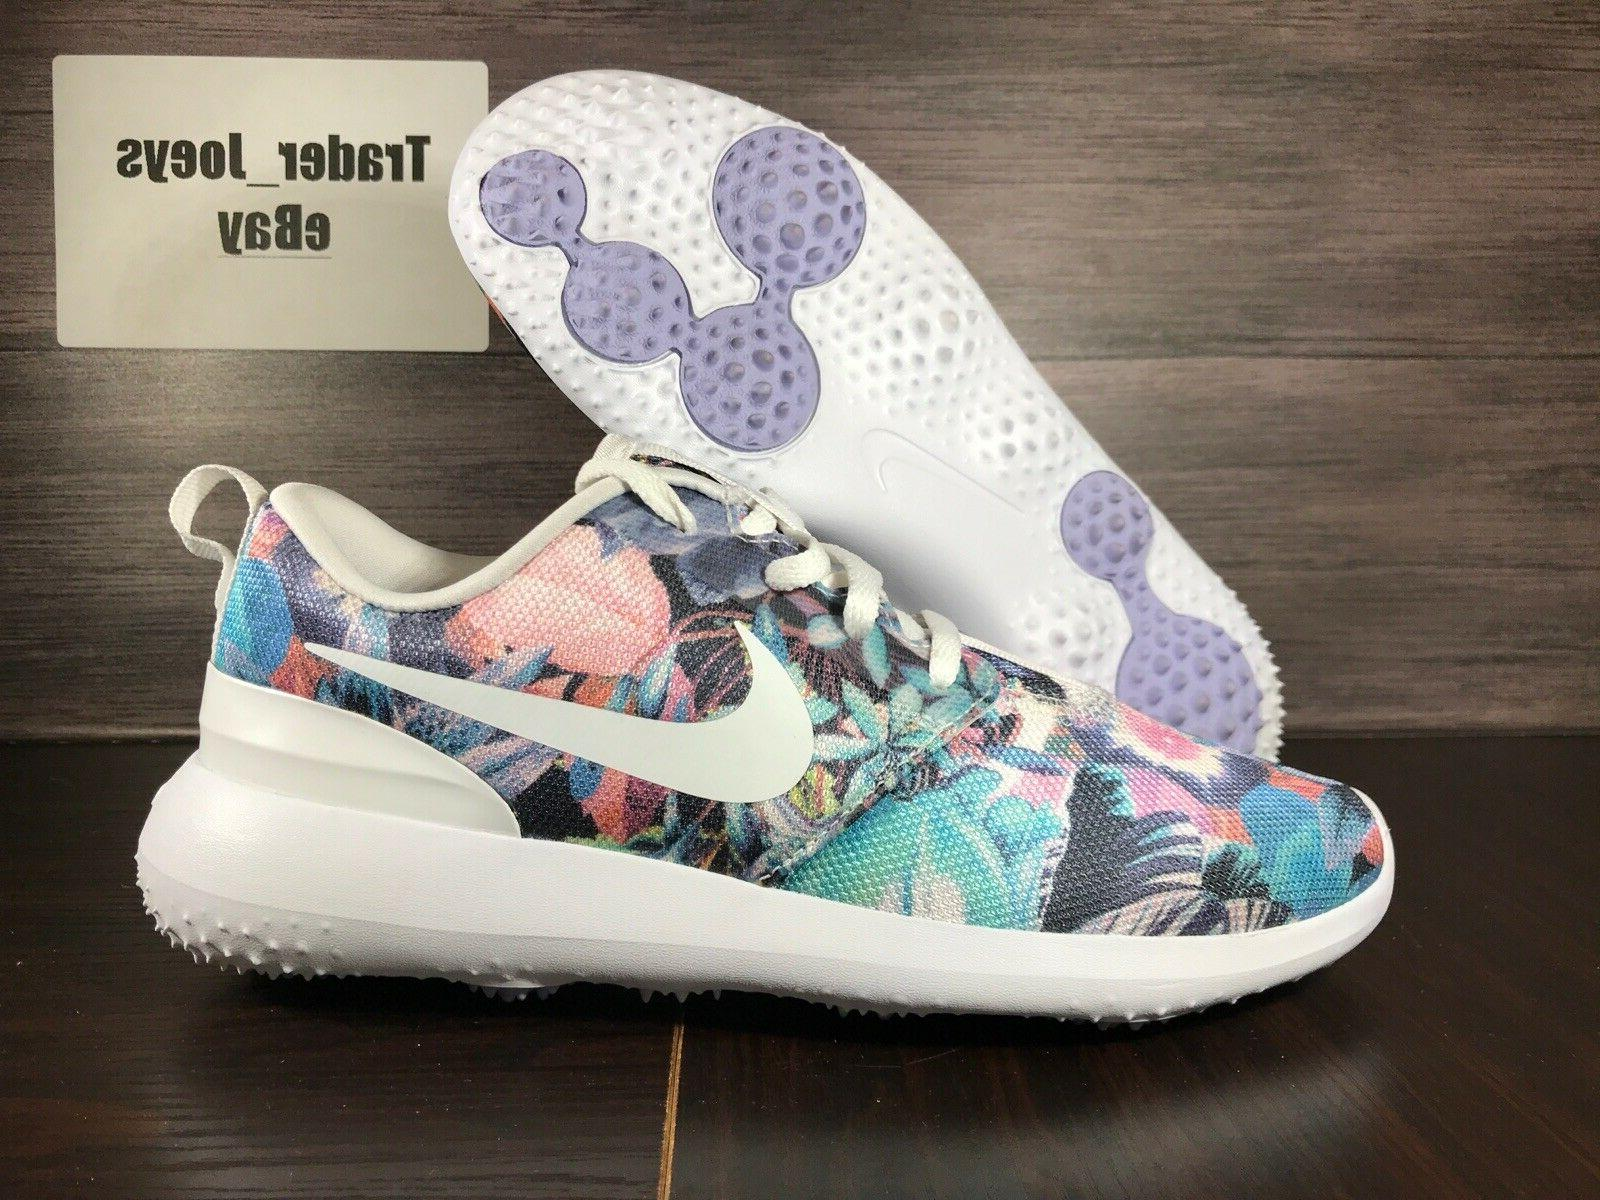 Nike Roshe G Women S Golf Shoes Spikeless Floral